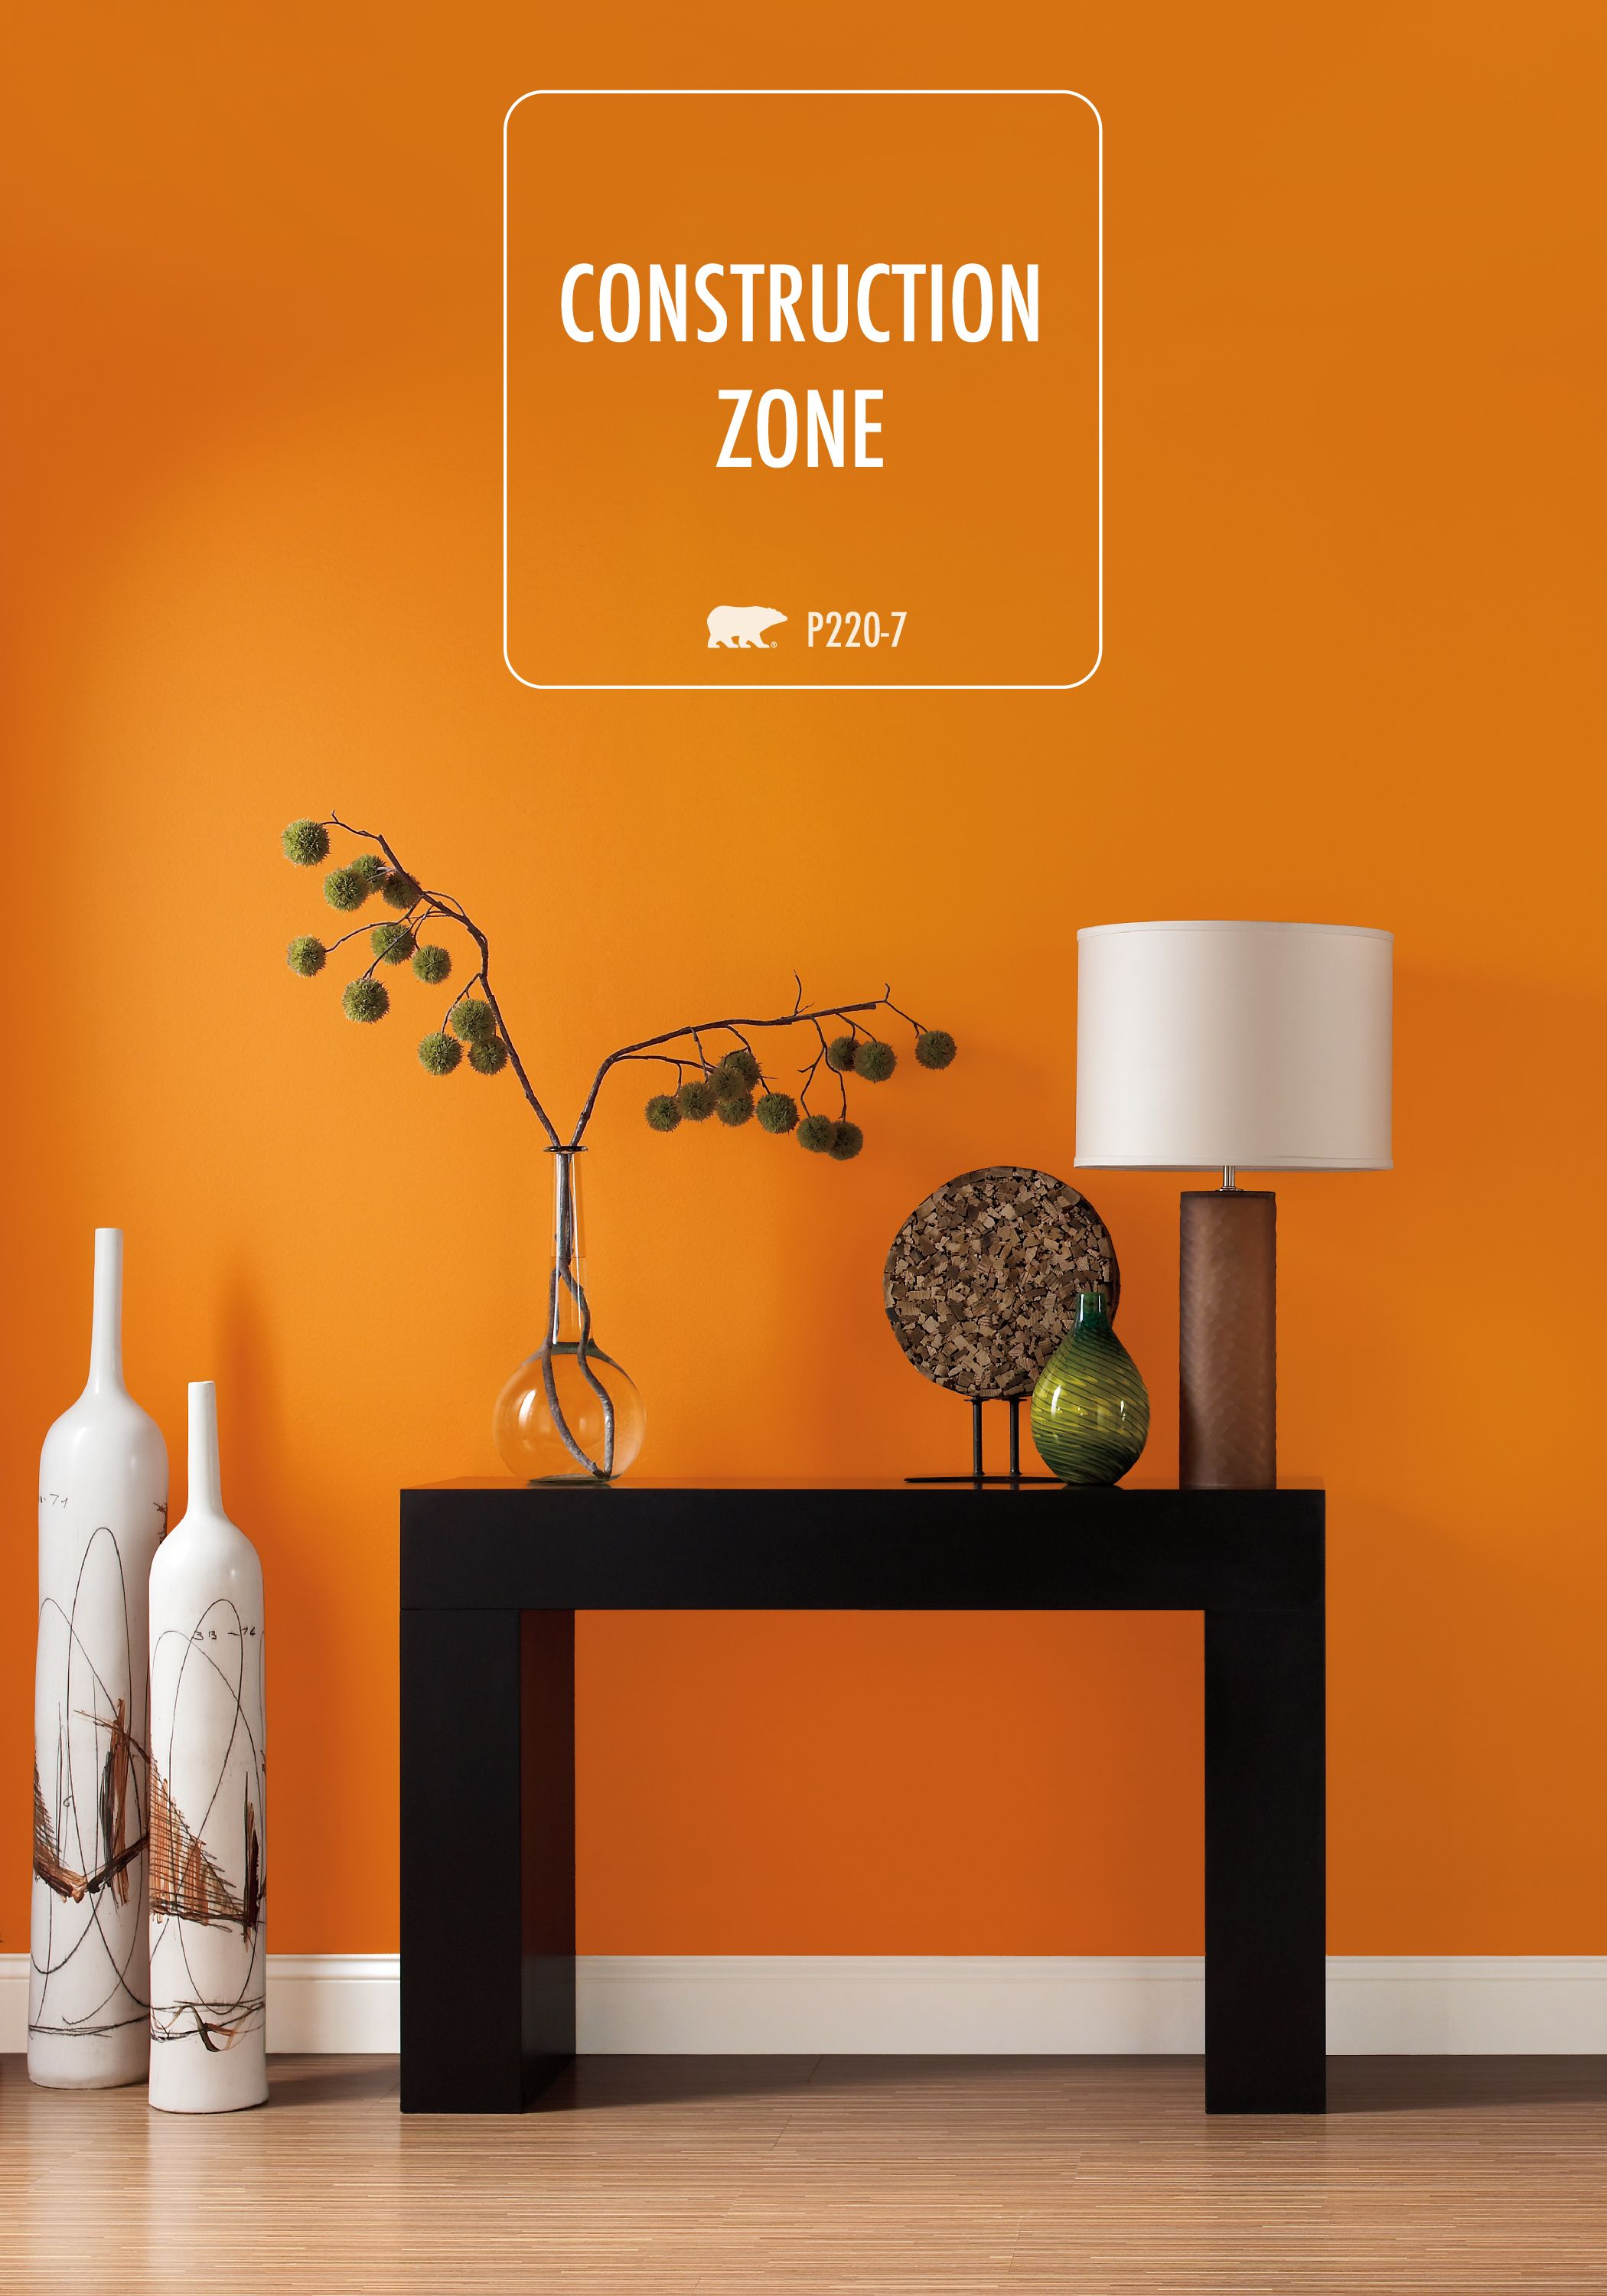 Bring Vibrancy To Your Home With This Stunning Shade Of Behr Paint In Construction Zone Try Balancing Out Eclectic Color By Bringing Streamlined